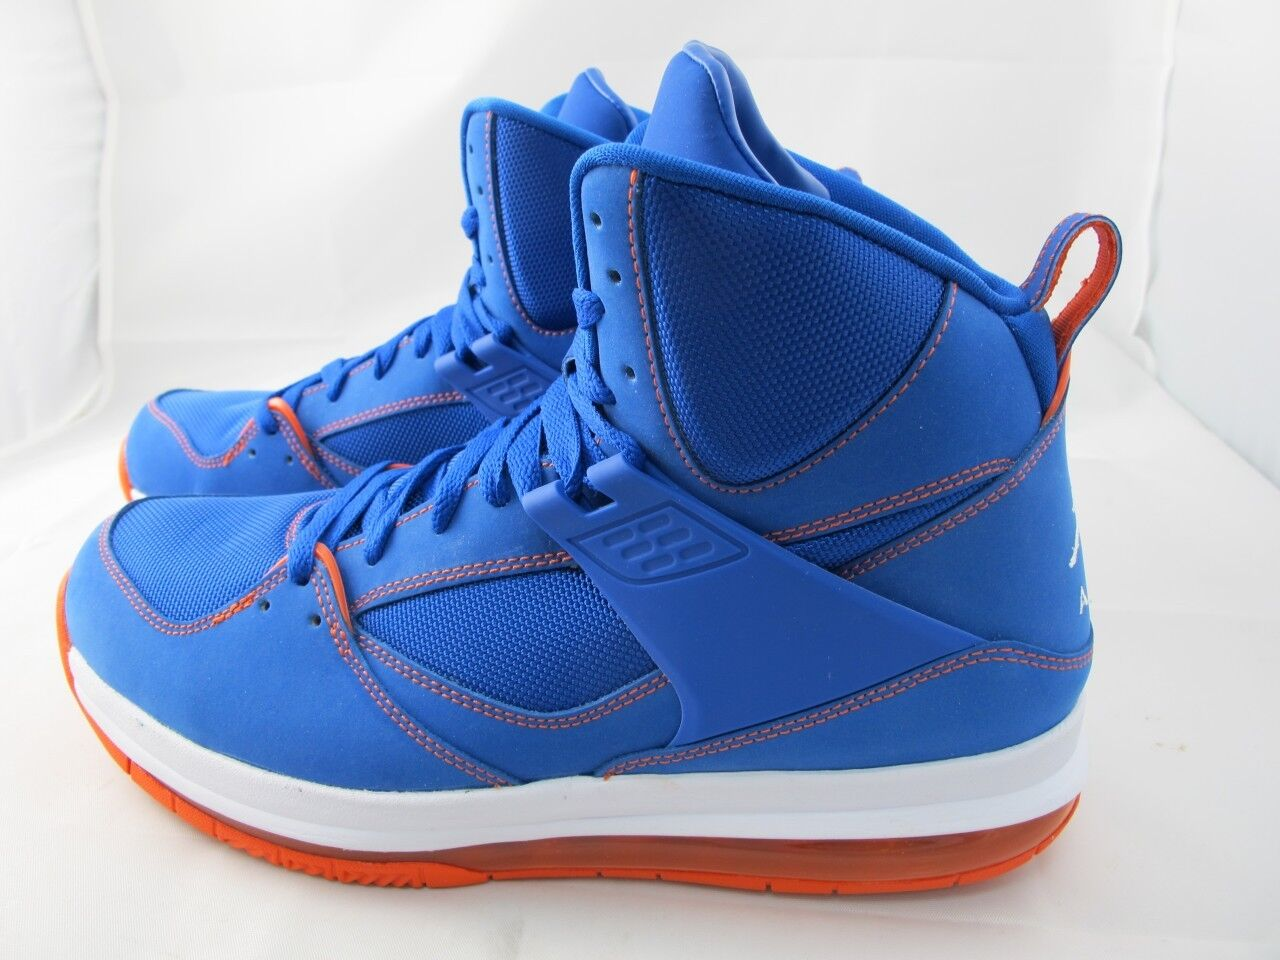 f92d5a0580ba NEW MEN S NIKE JORDAN FLIGHT 45 HIGH MAX 524866-401 524866-401 524866-401  f5d84b